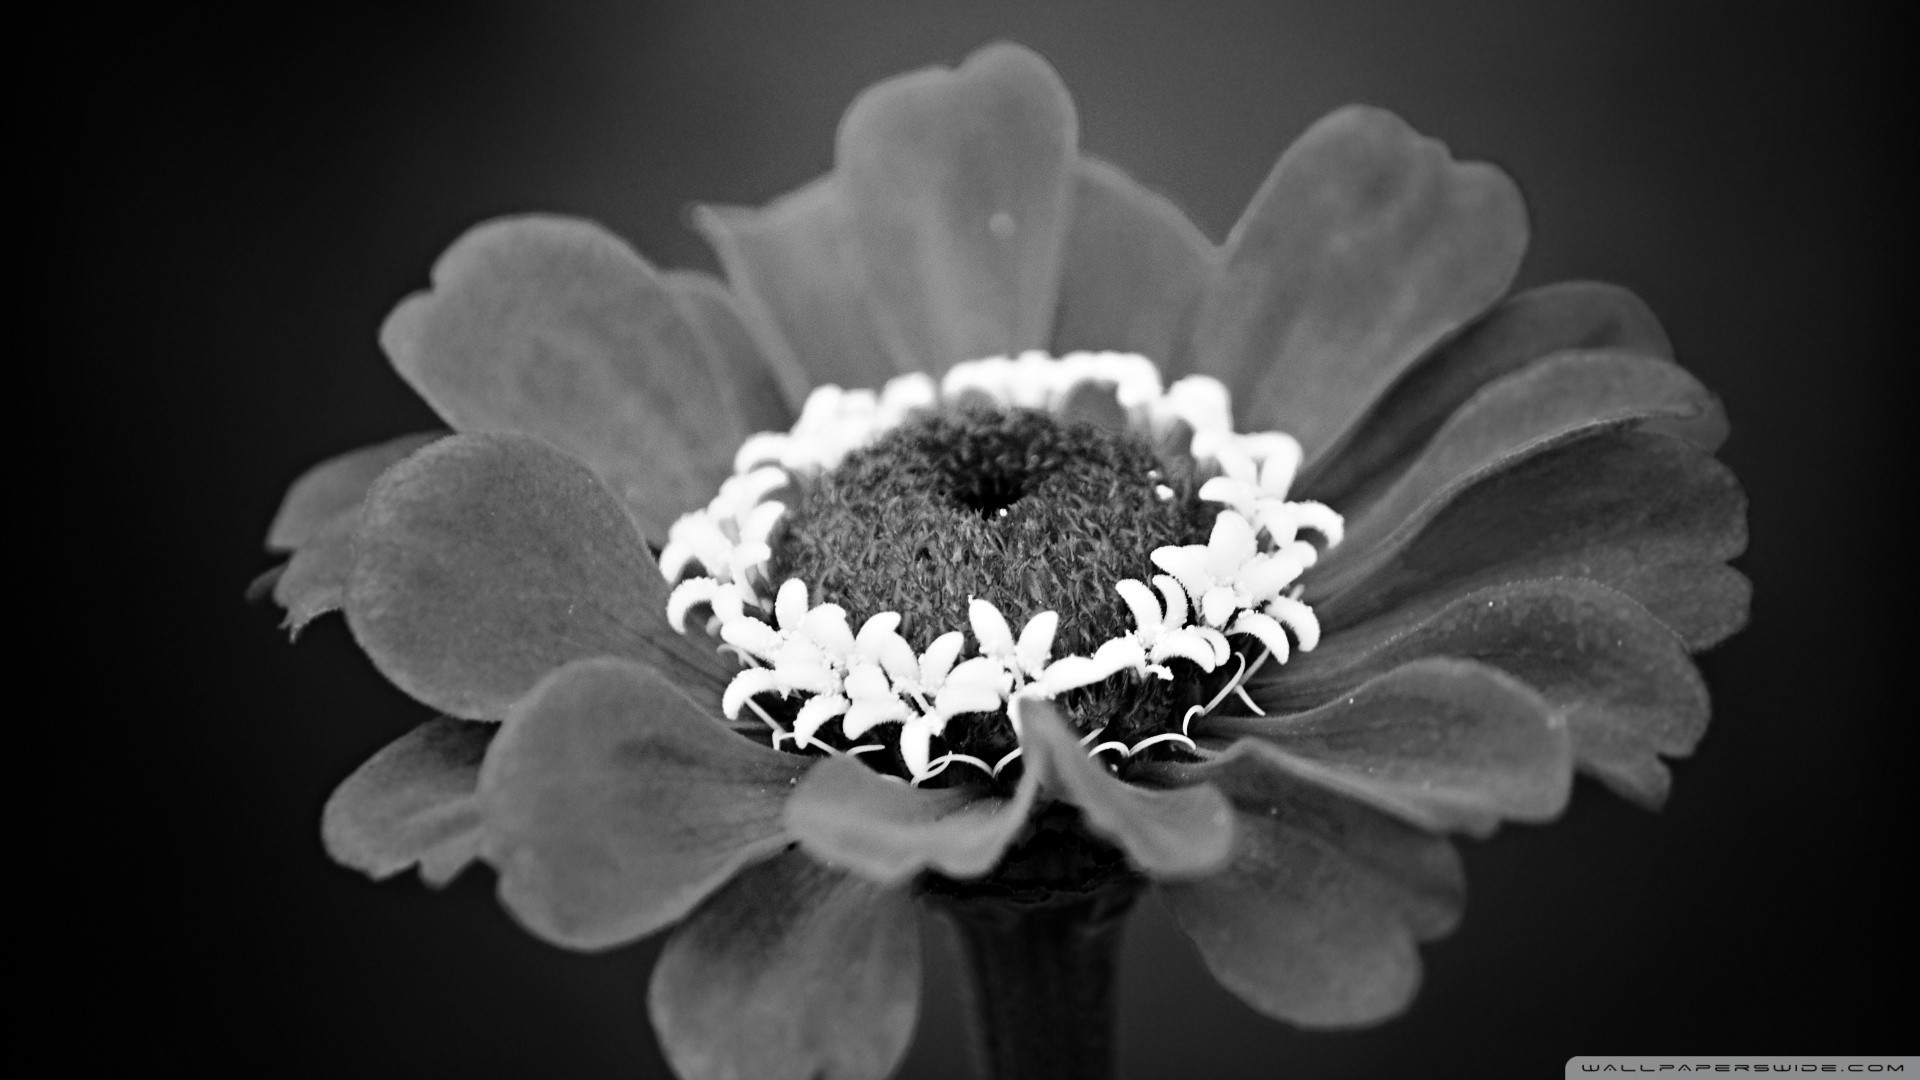 Black and white nature flowers wallpaper allwallpaper 8437 black and white nature flowers wallpaper mightylinksfo